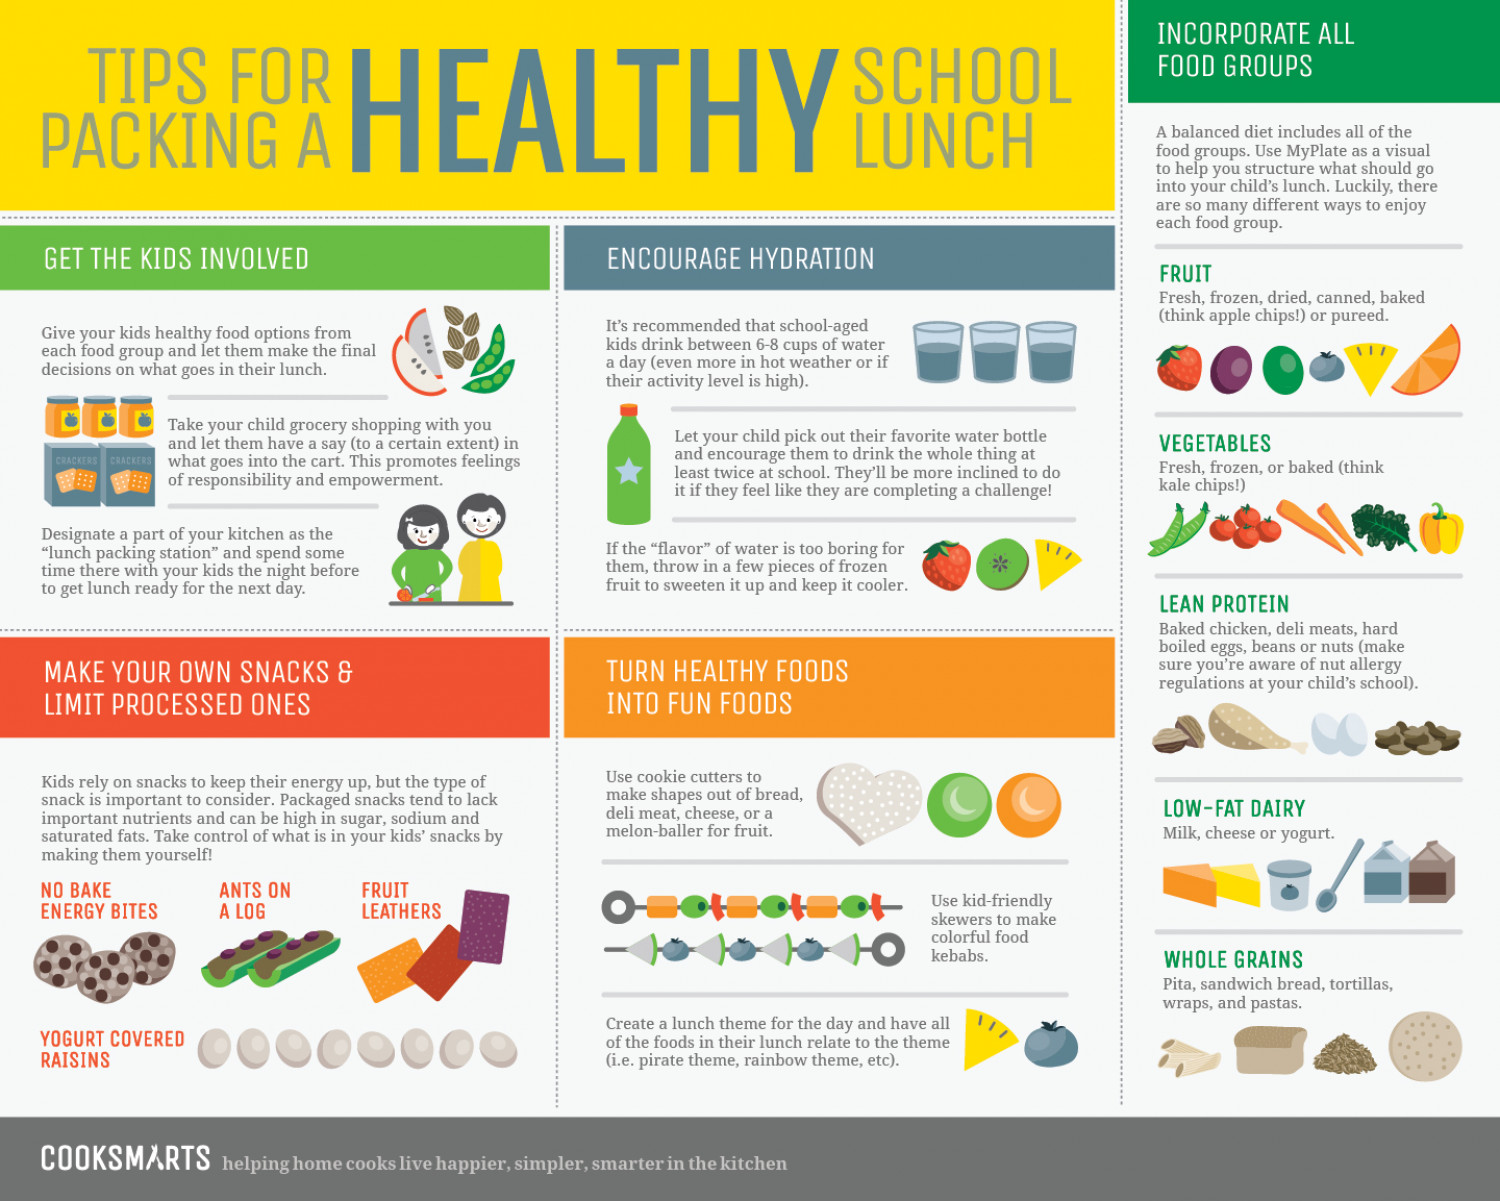 Tips for Packing a Healthy School Lunch Infographic